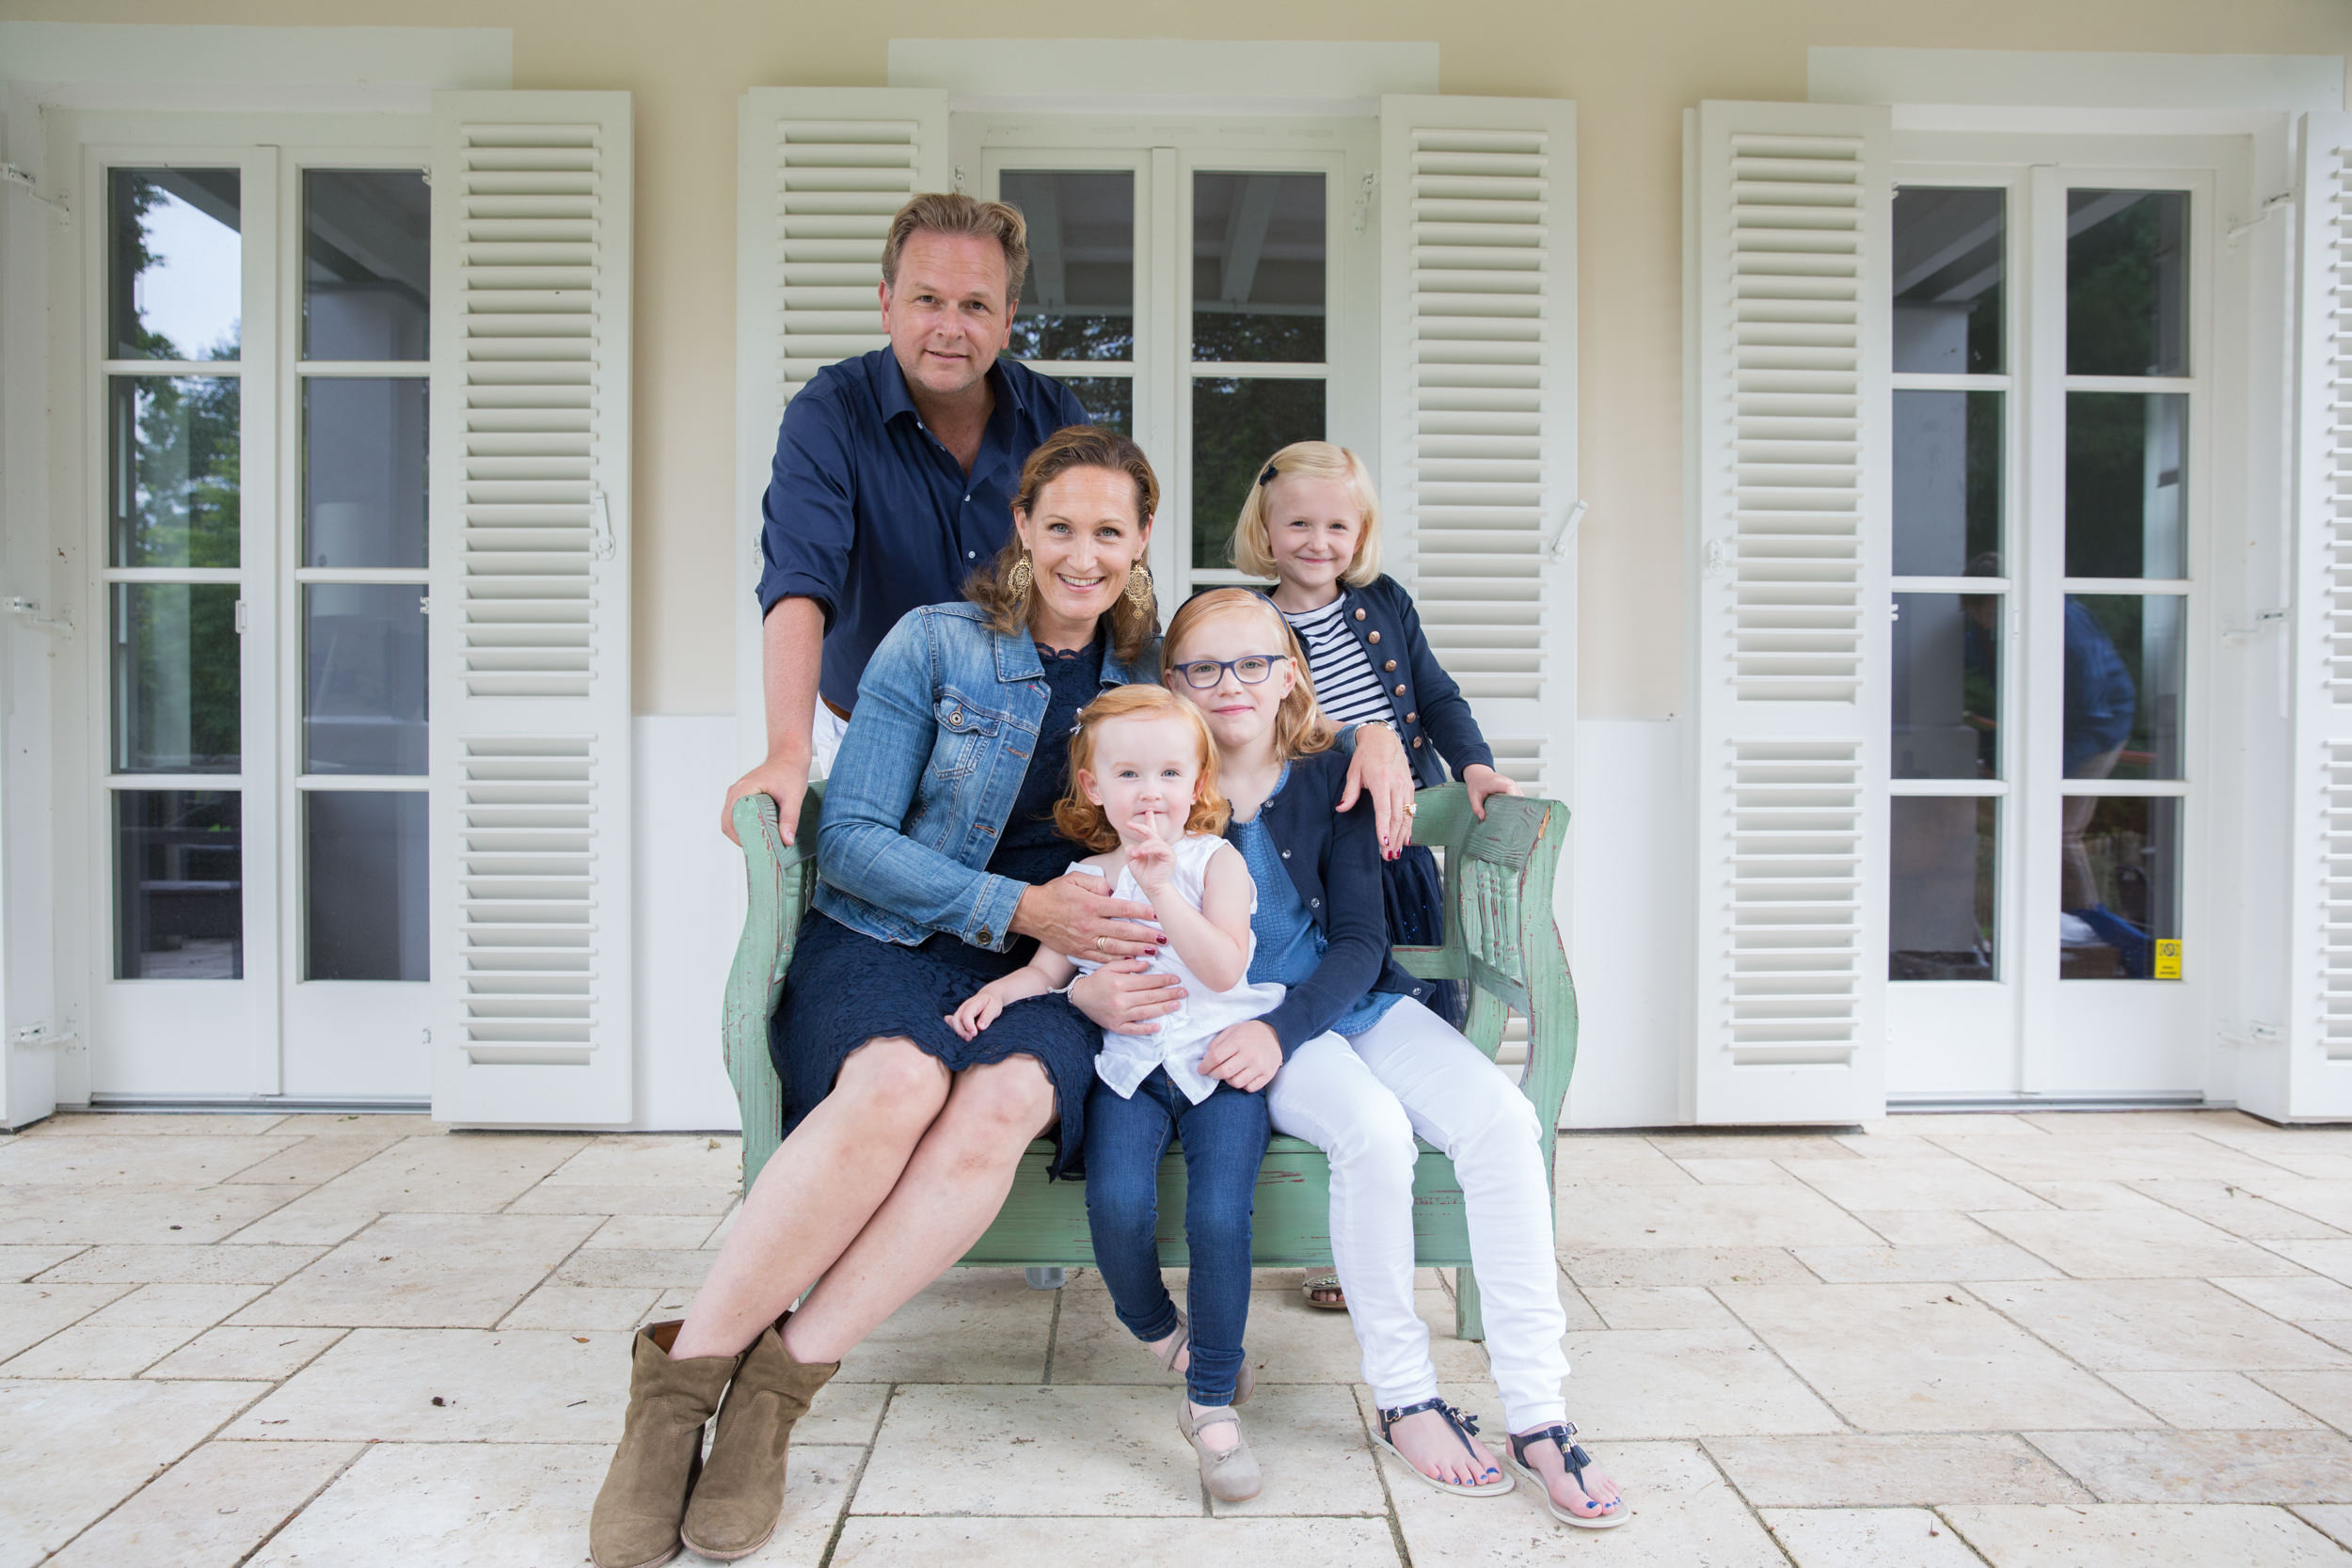 Alice photographed with her adorable 3 young daughters in Starnberg south of Munich by Charlotte Starup at her home. The photo is printed in 70 times 100 and hanging on a brick wall with modern lamps.